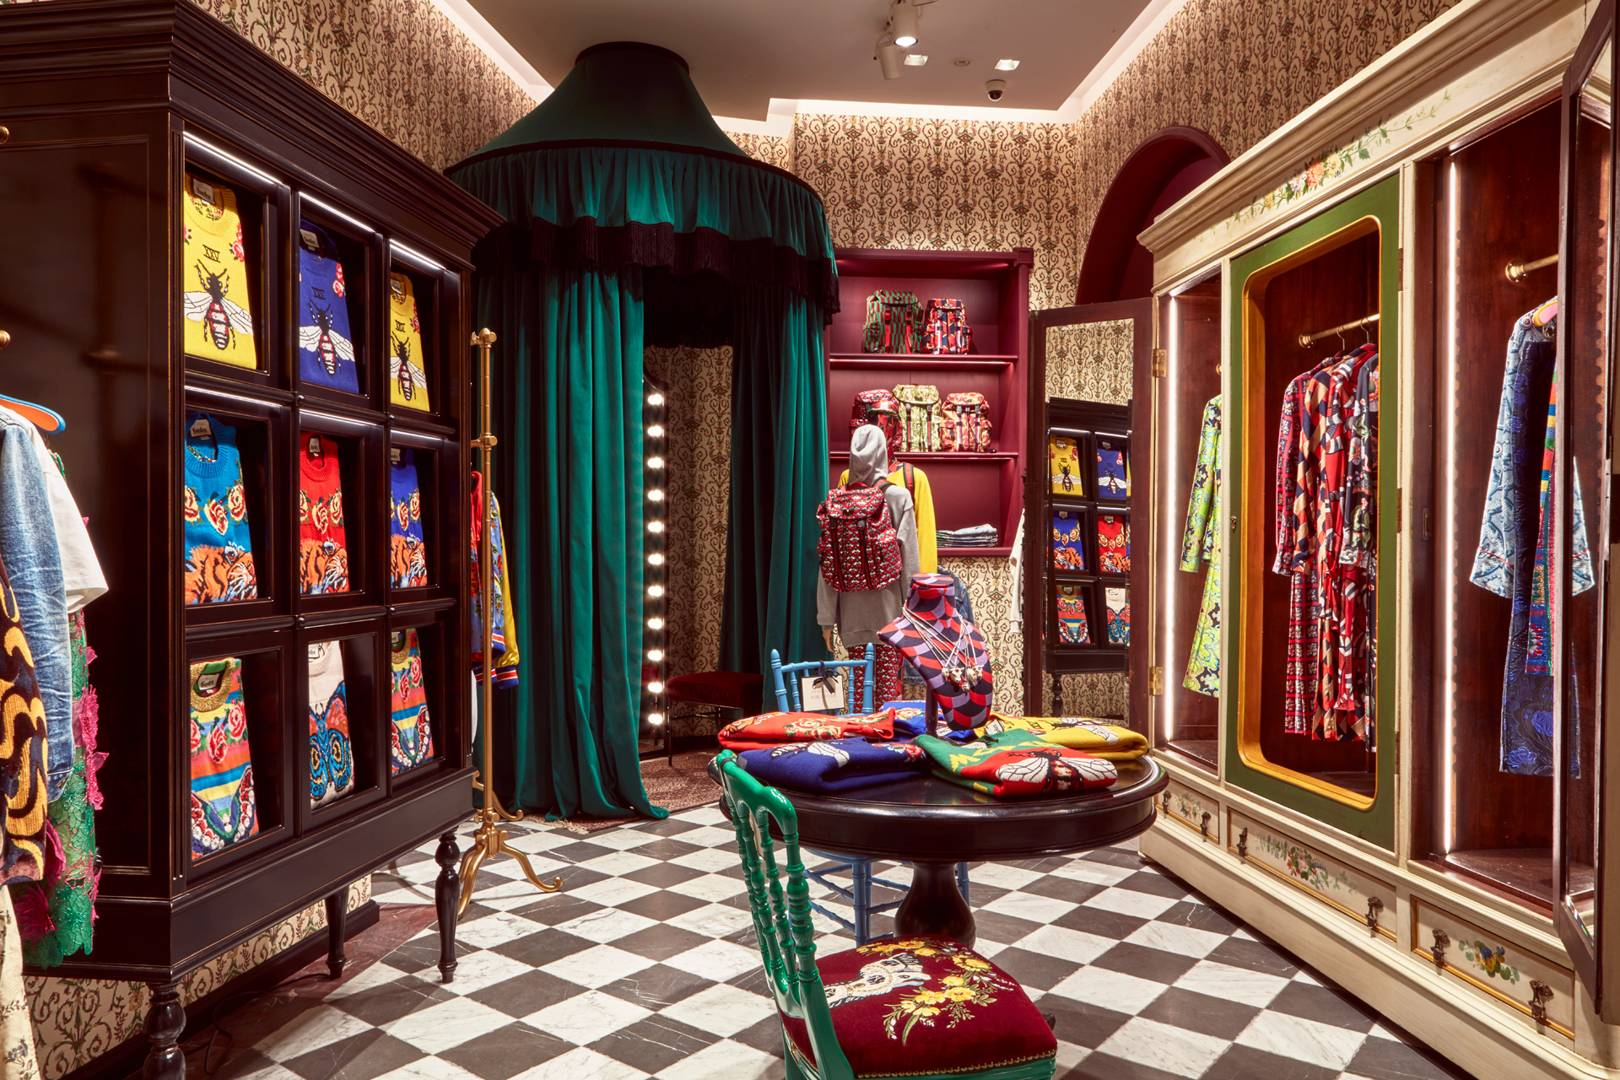 gucci all trouble scoops project rights rooms latest of andrew michele garden news by kiki fashion mr ltd unveils co alessandro wwd courtesy kaikai room reserved